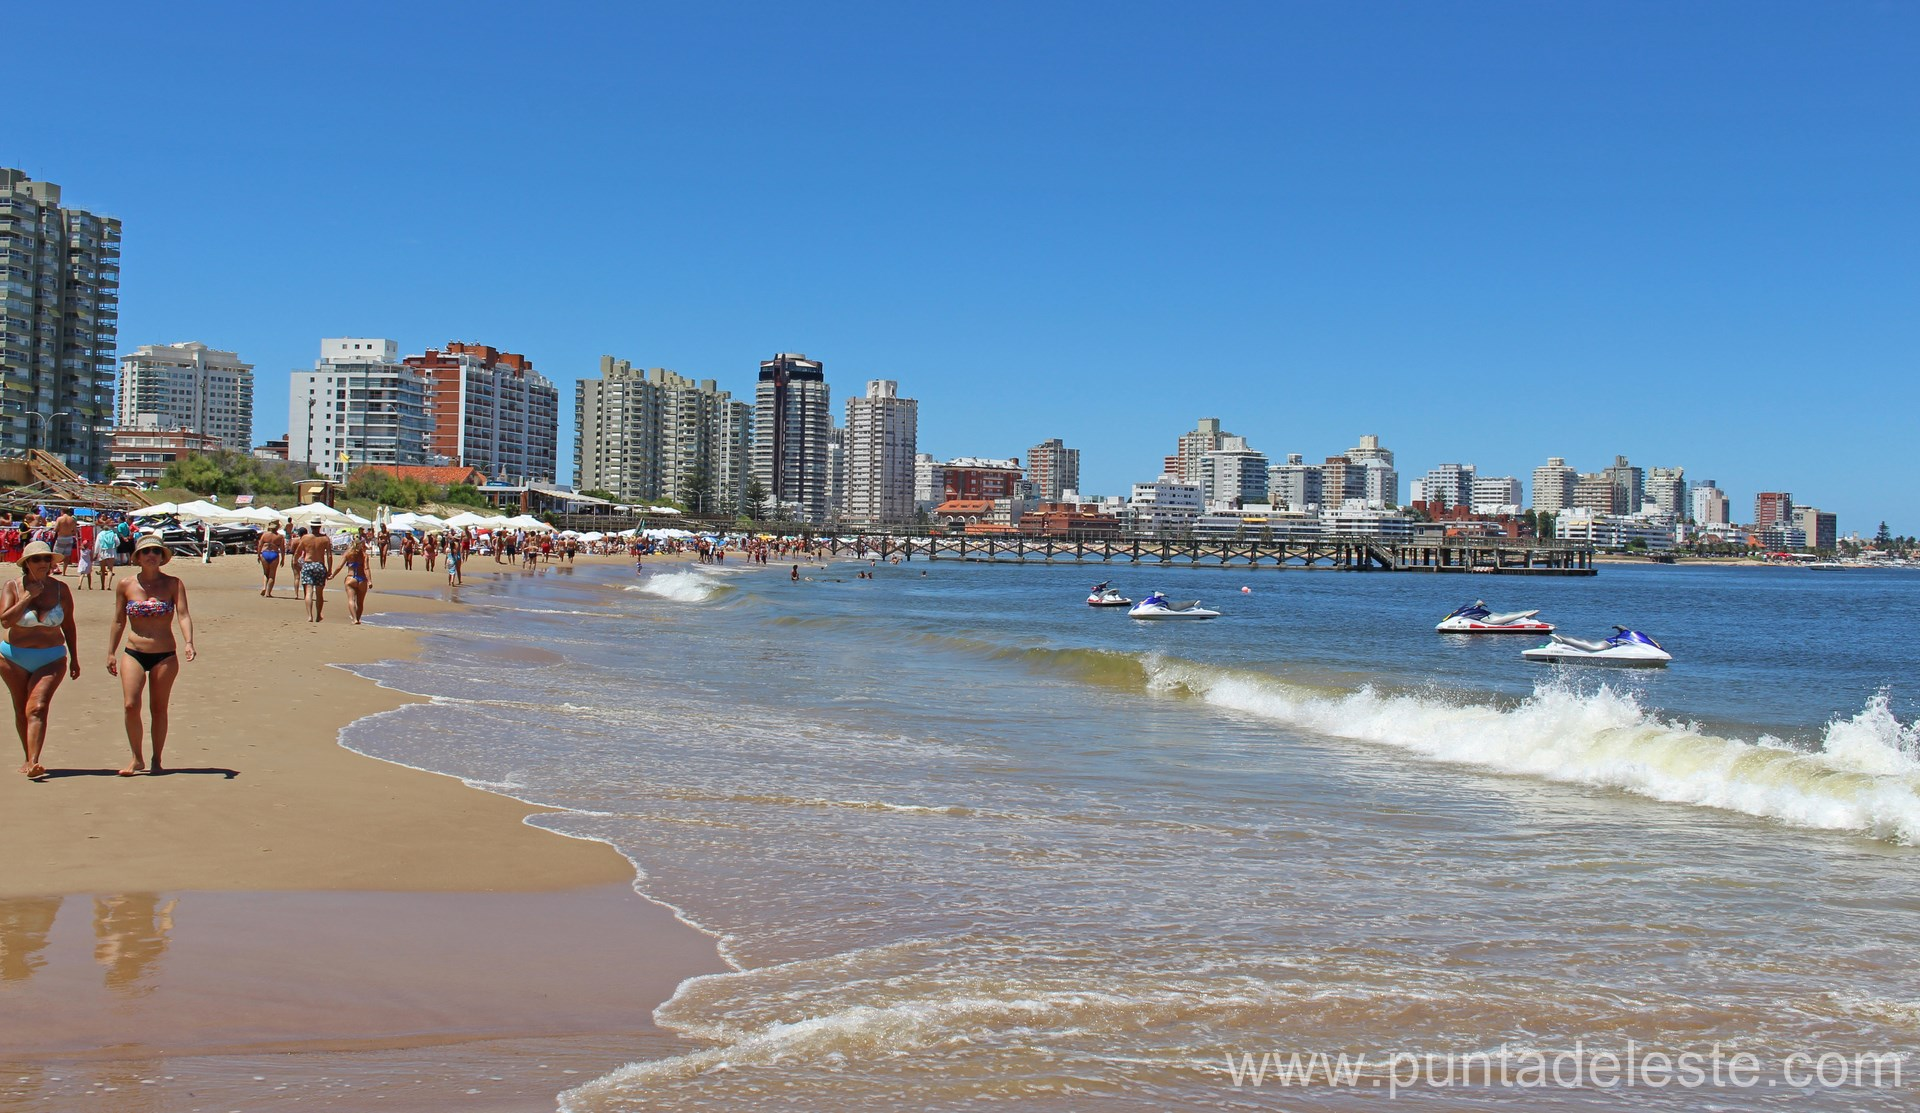 What to Do and See in Punta del Este, Uruguay